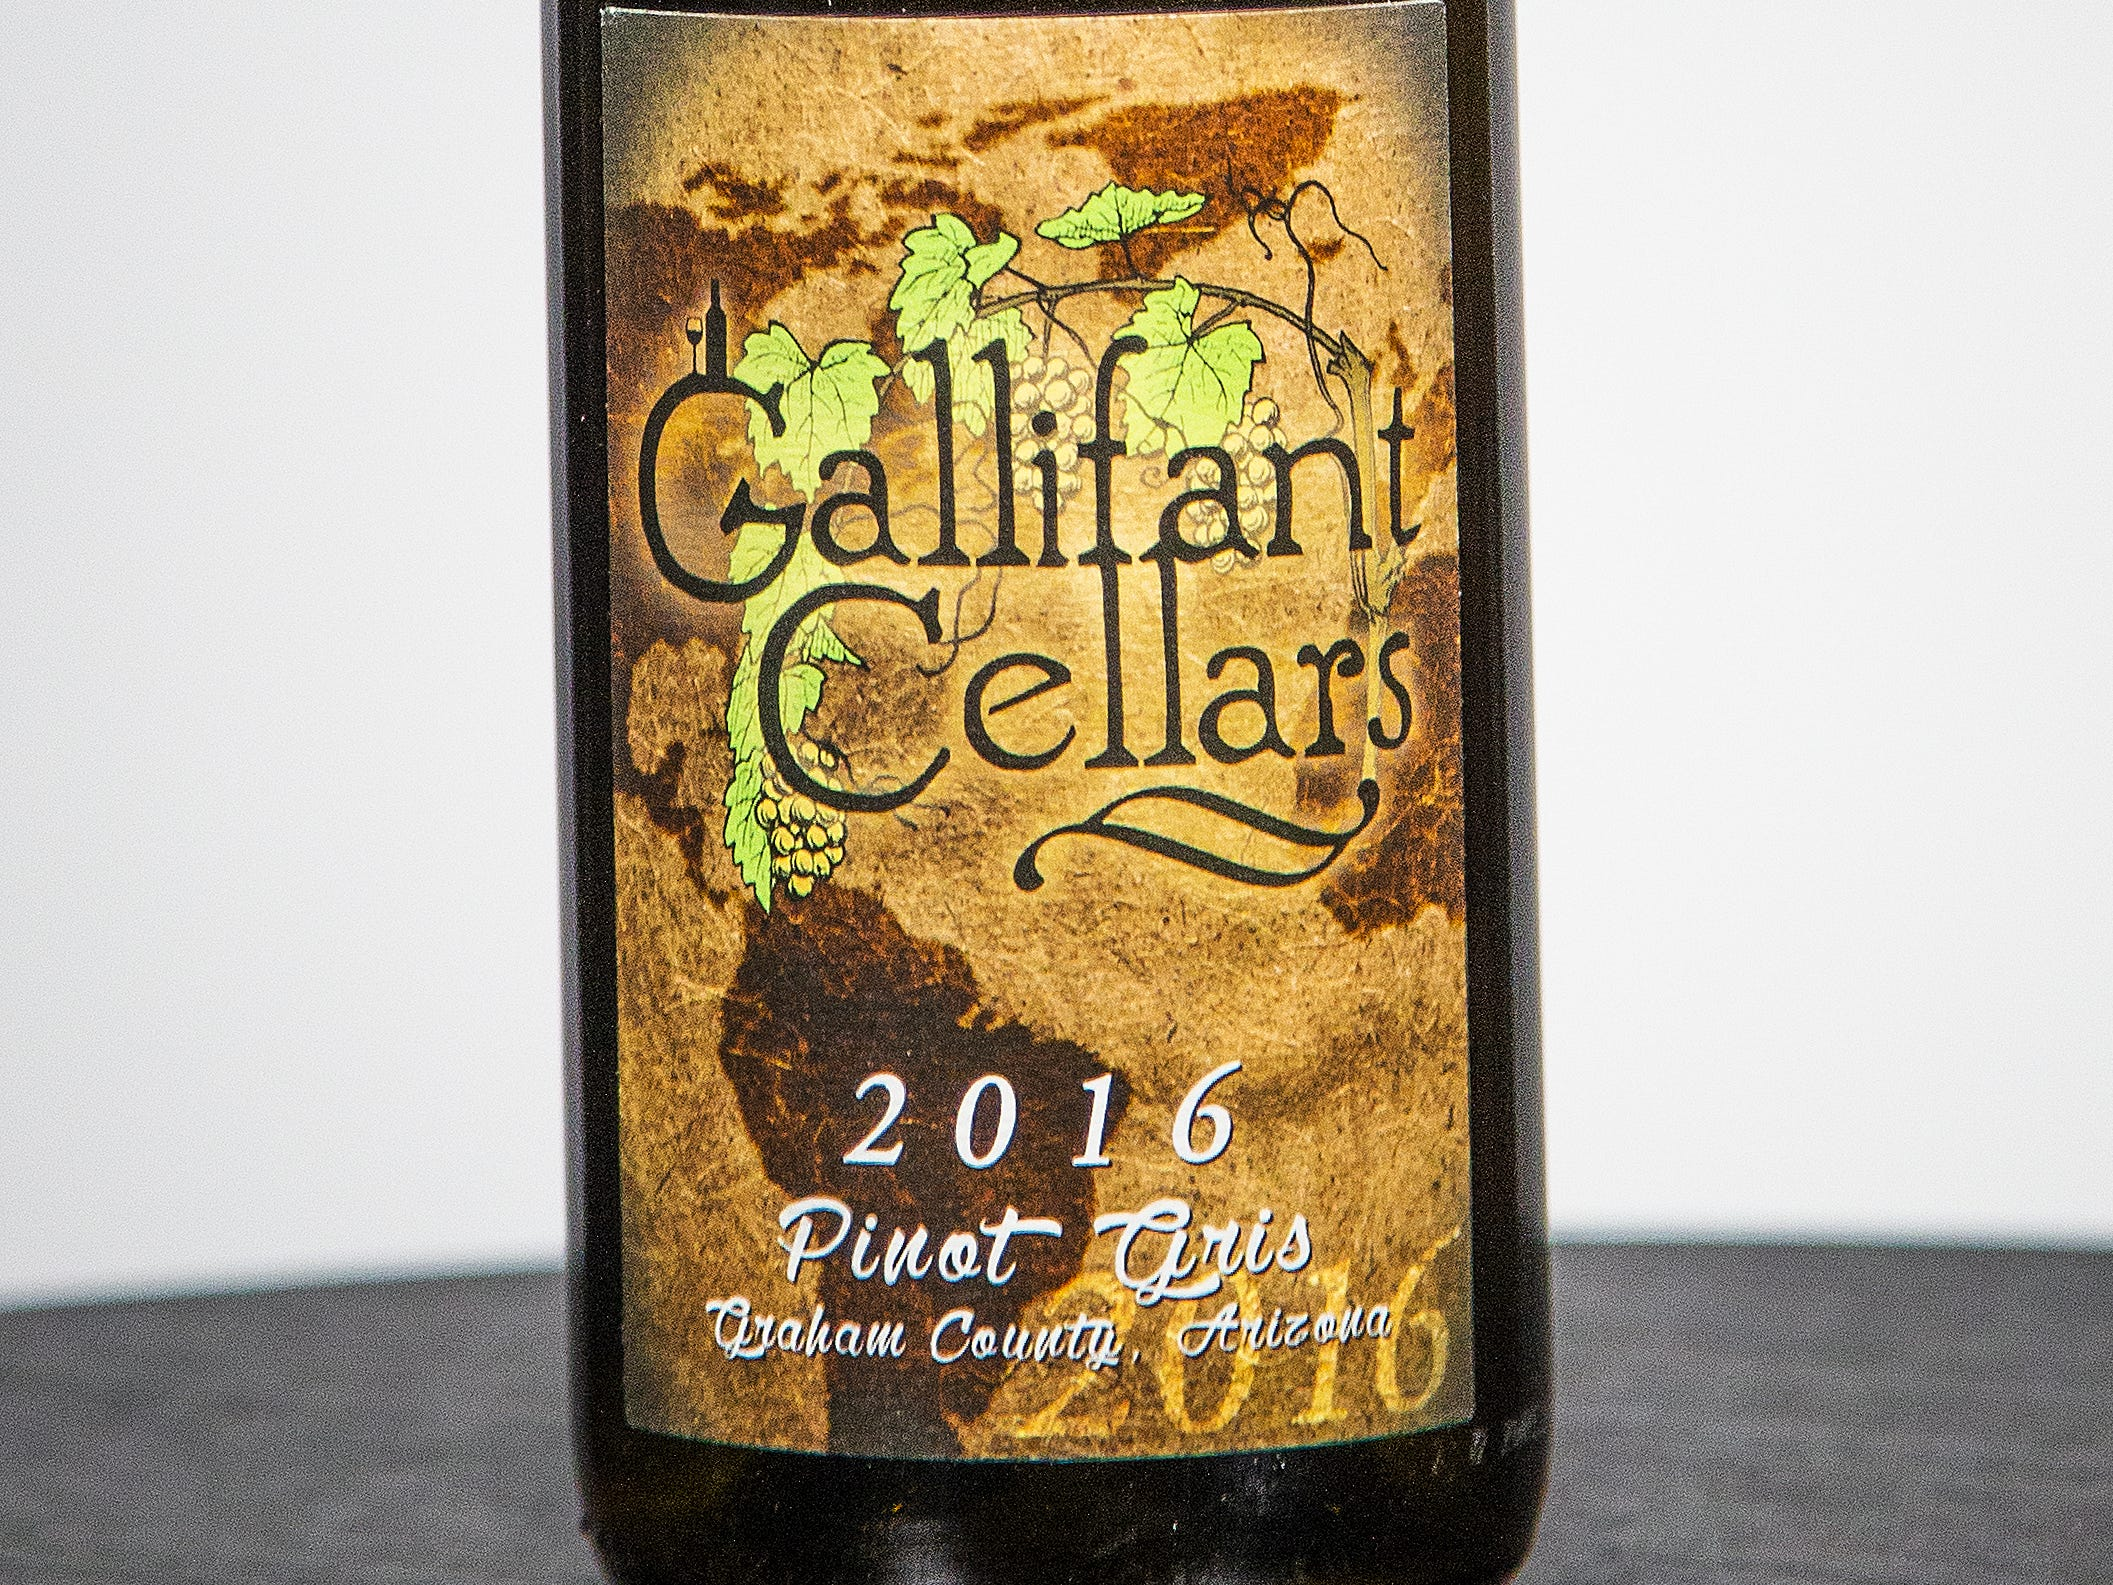 Best Pinot Grigio: Gallifant Cellars Pinot Gris 2016.